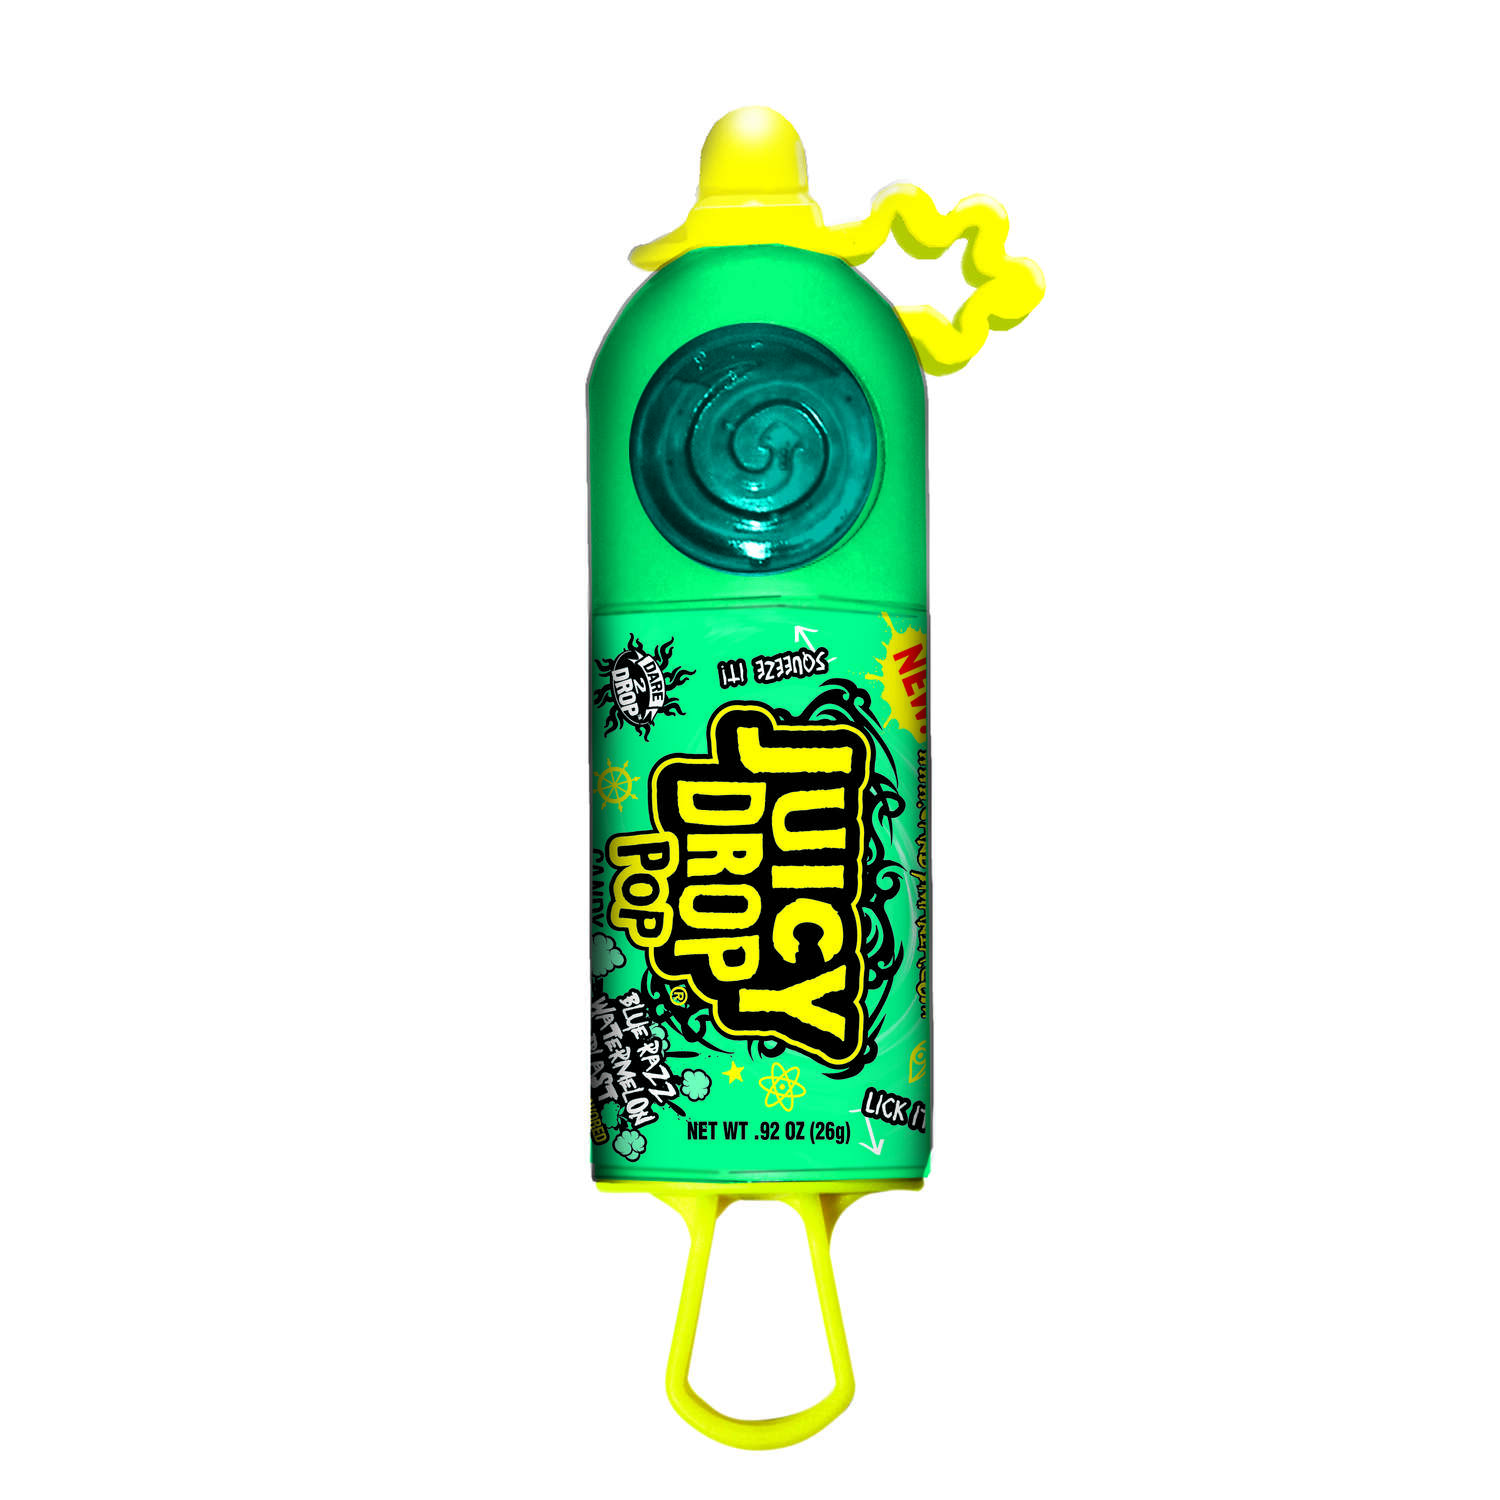 Topps  Juicy Drop  Assorted  Lollipop  0.92 oz.